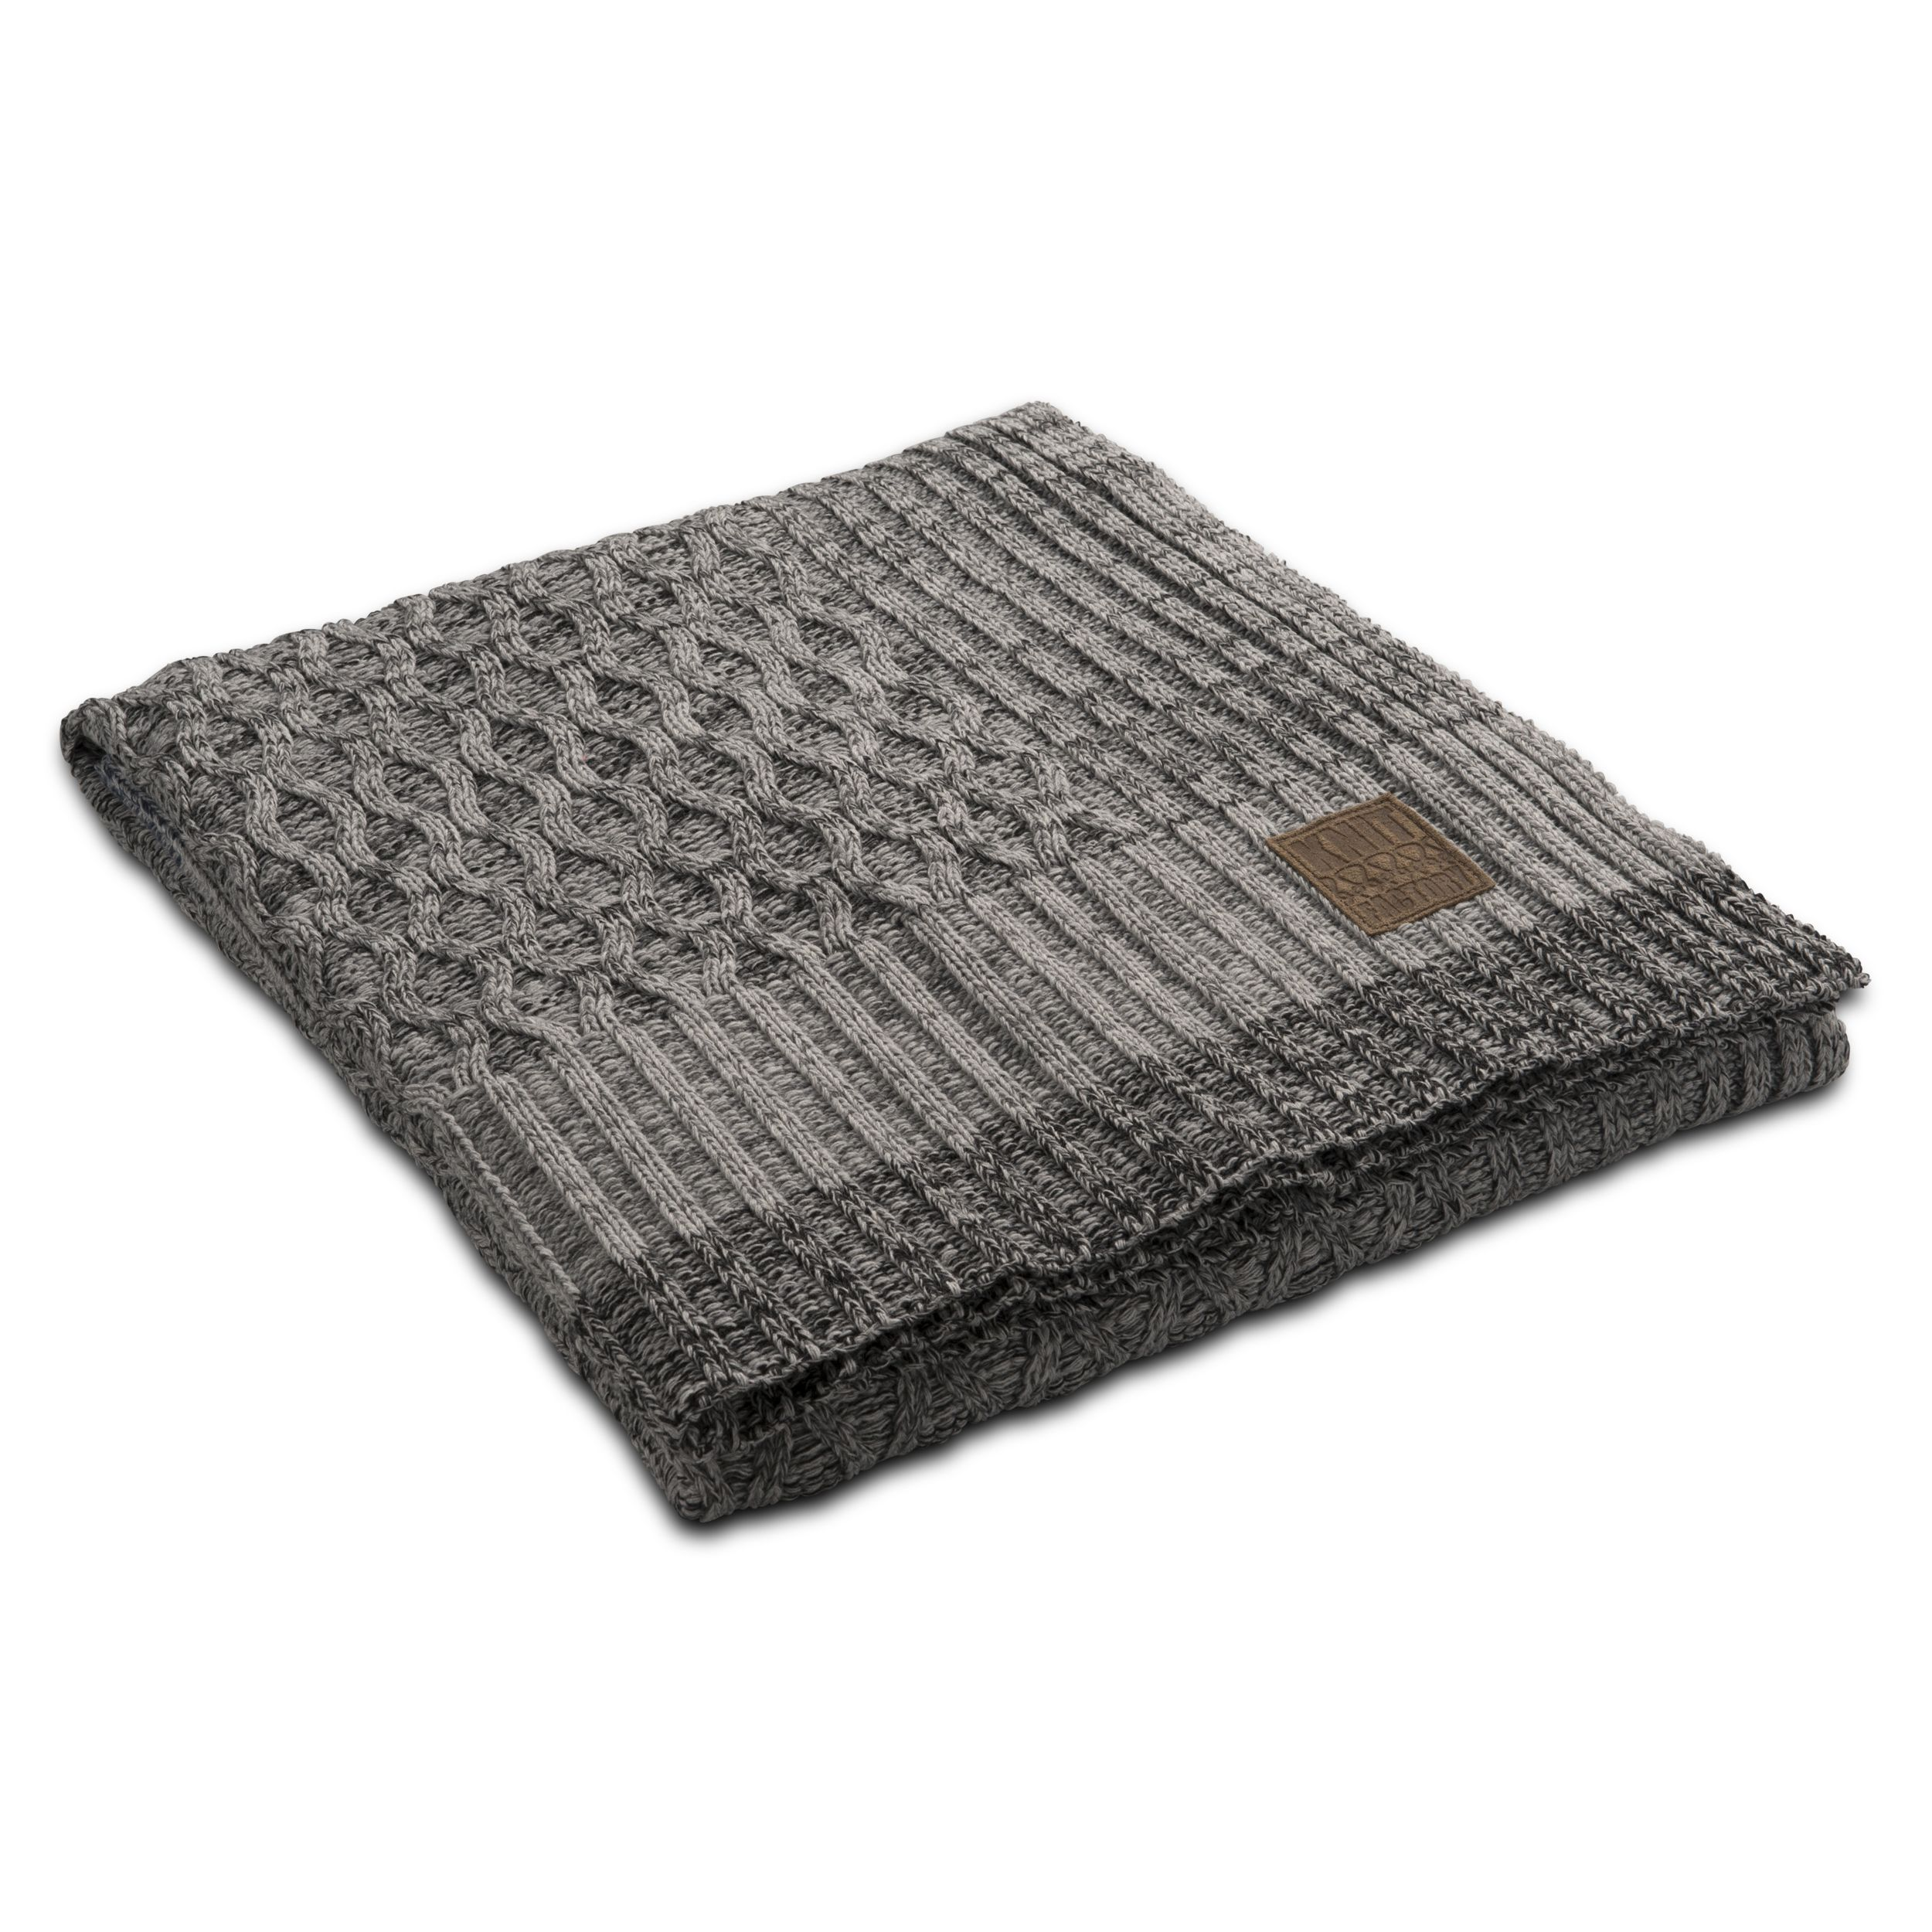 Plaid Trix light grey mele by Knit Factory www.knitfactory.nl